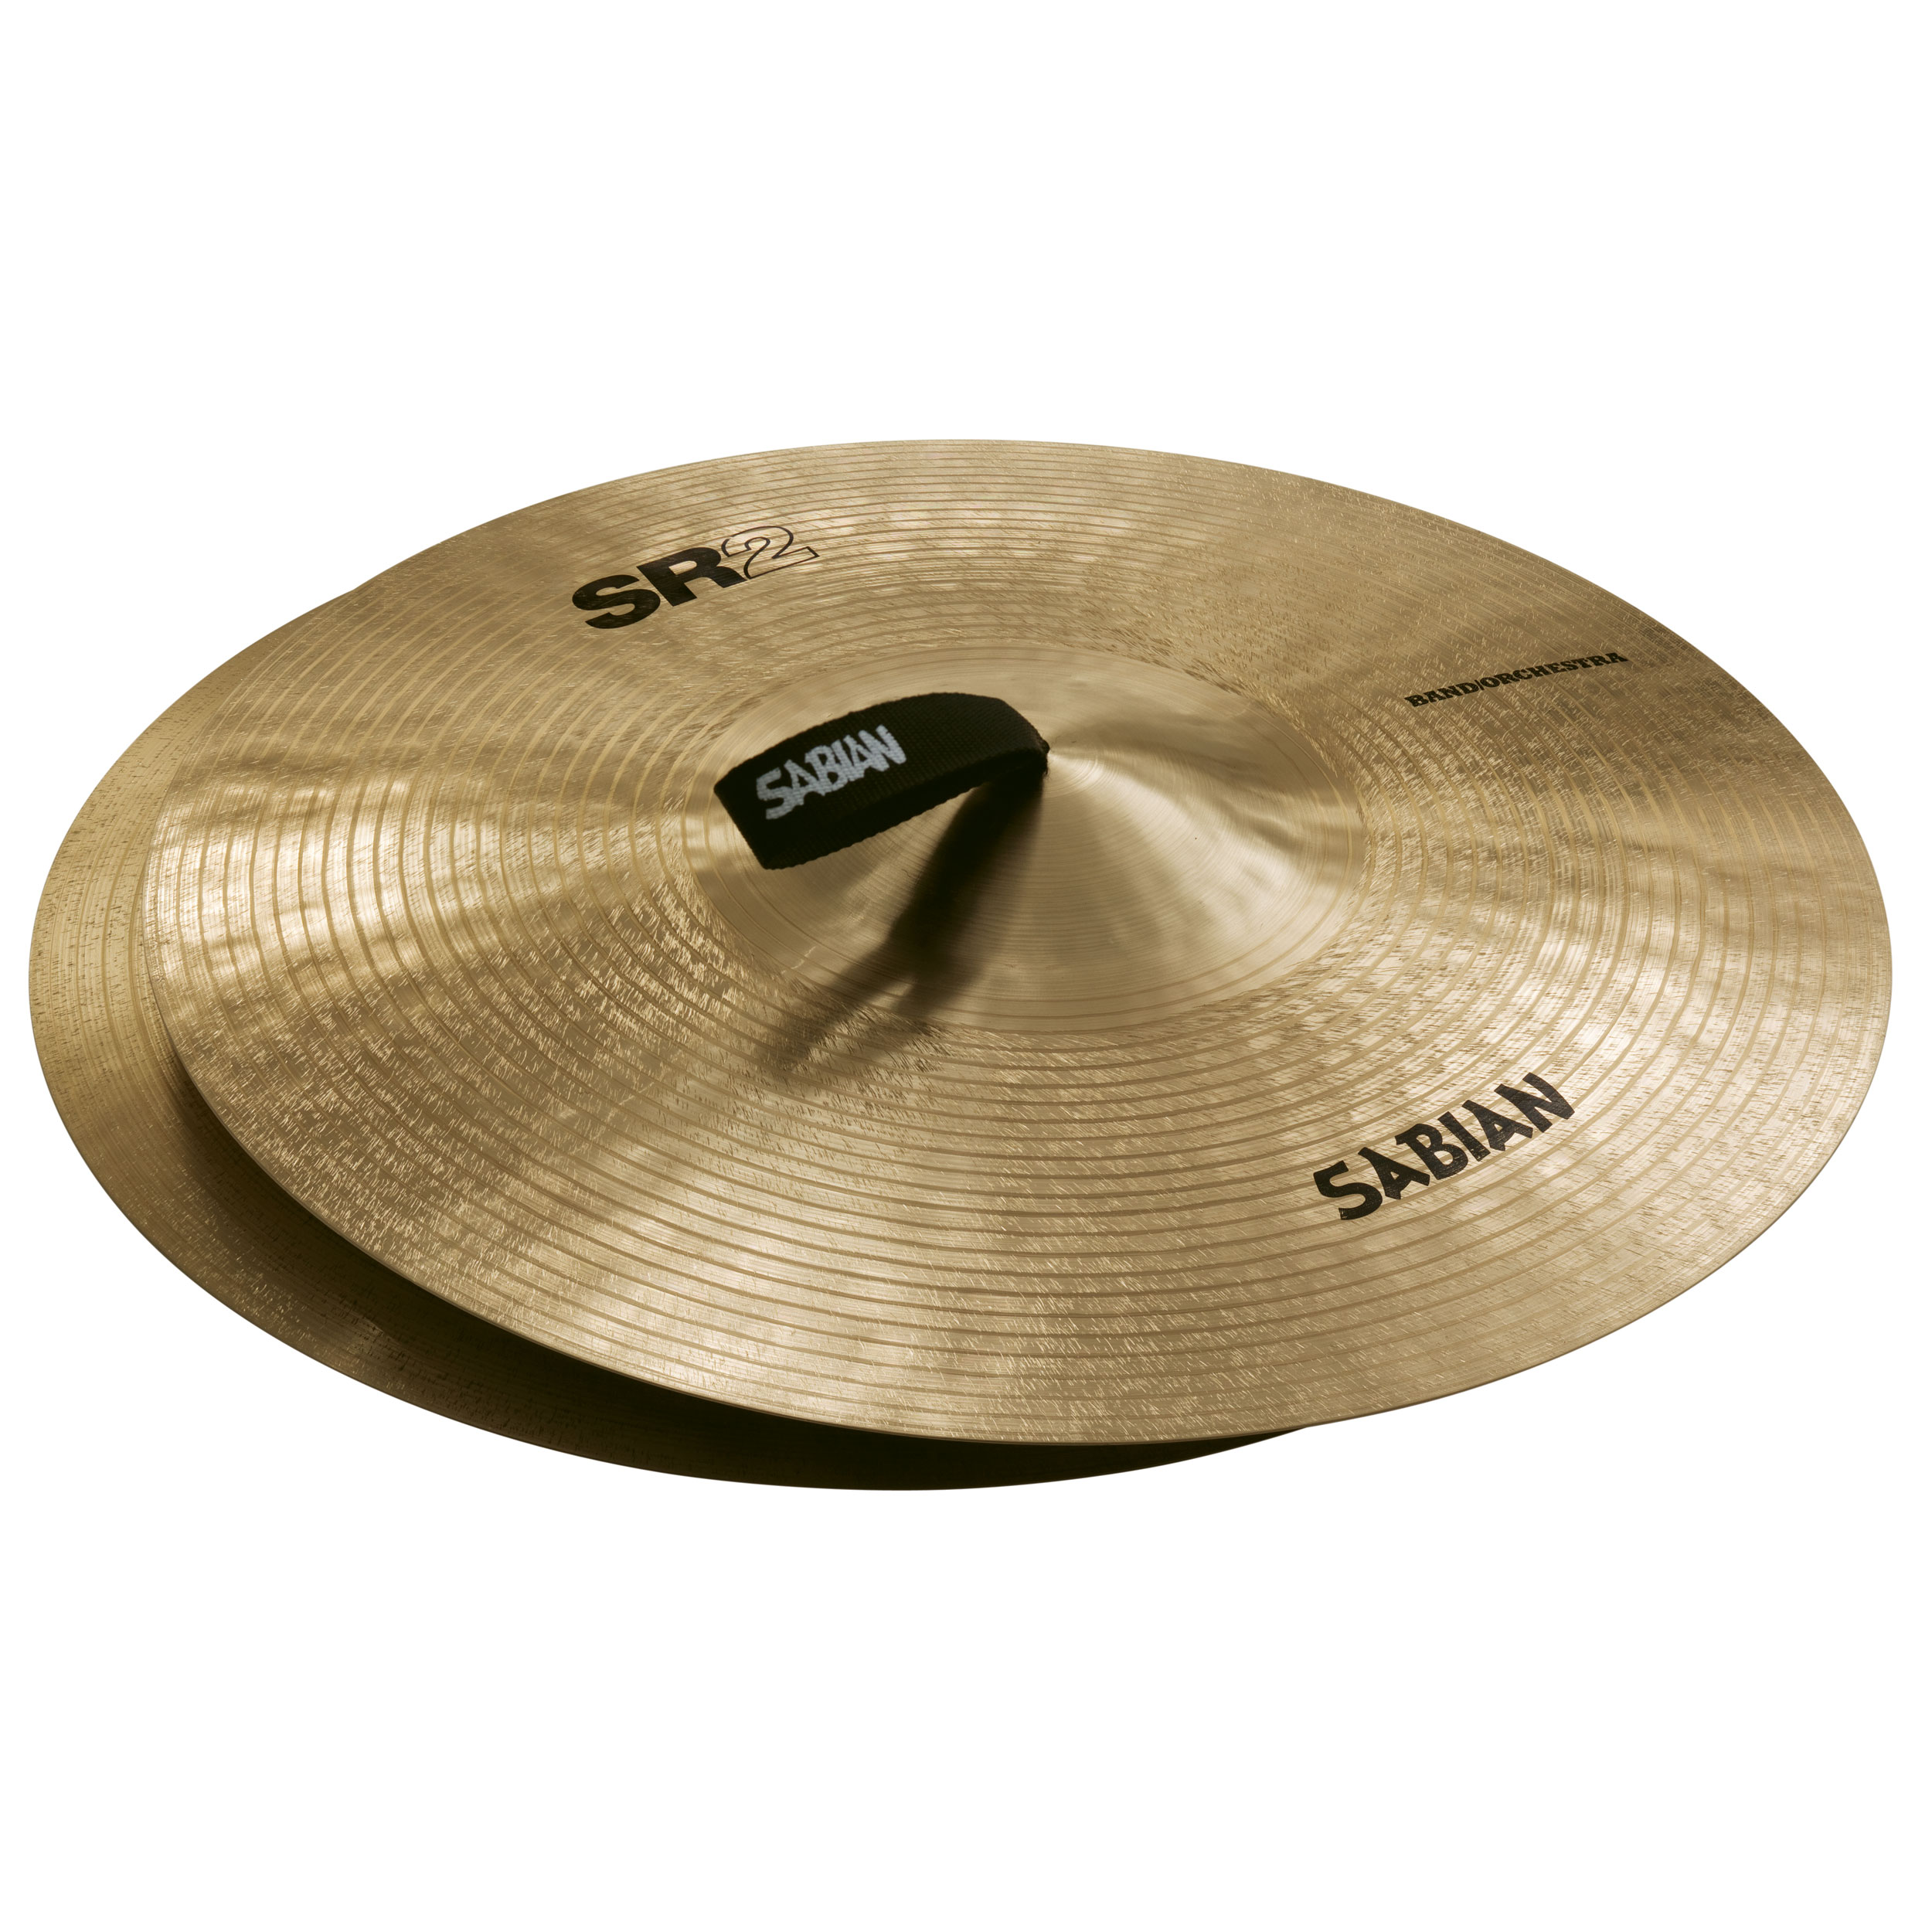 "Sabian 19"" SR2 Band & Orchestra Heavy Crash Cymbal Pair"